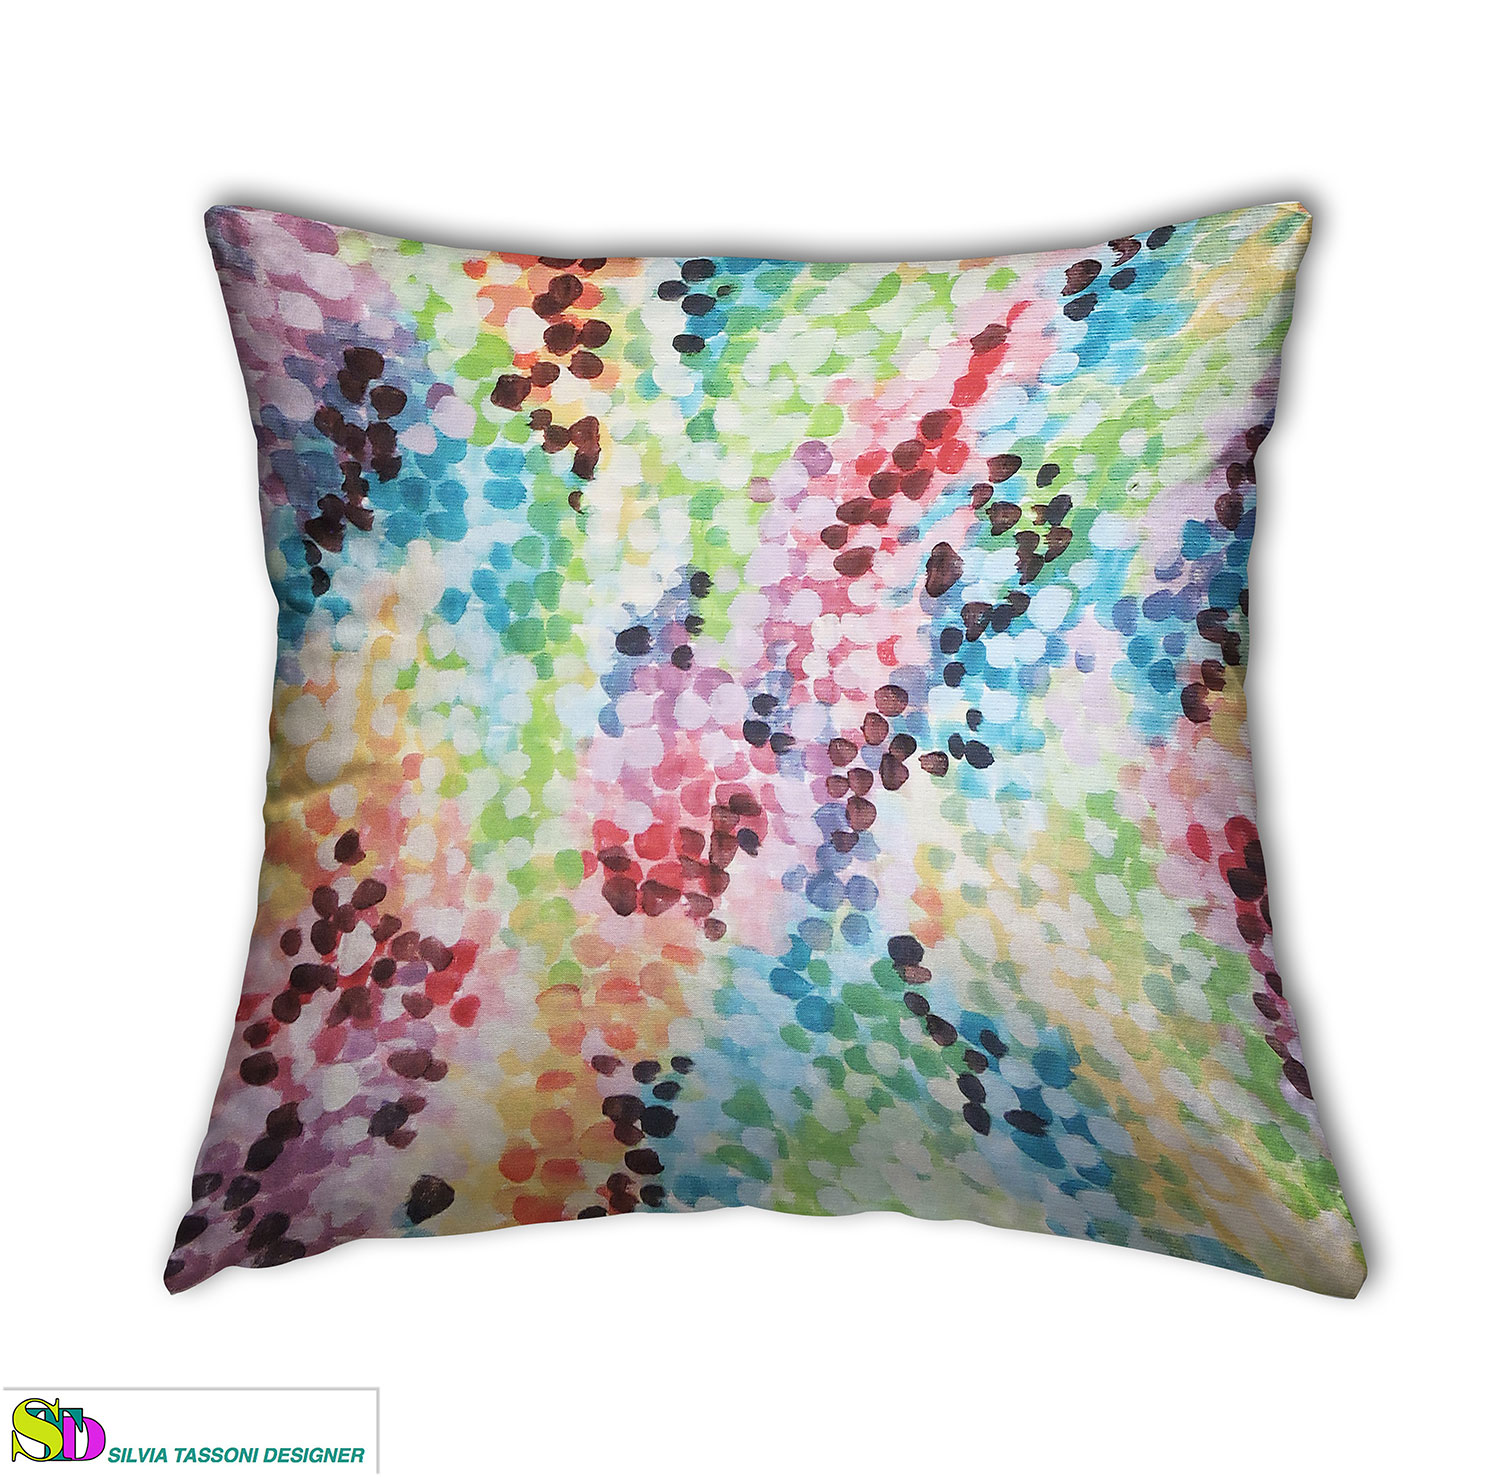 pillows textile design abstract style